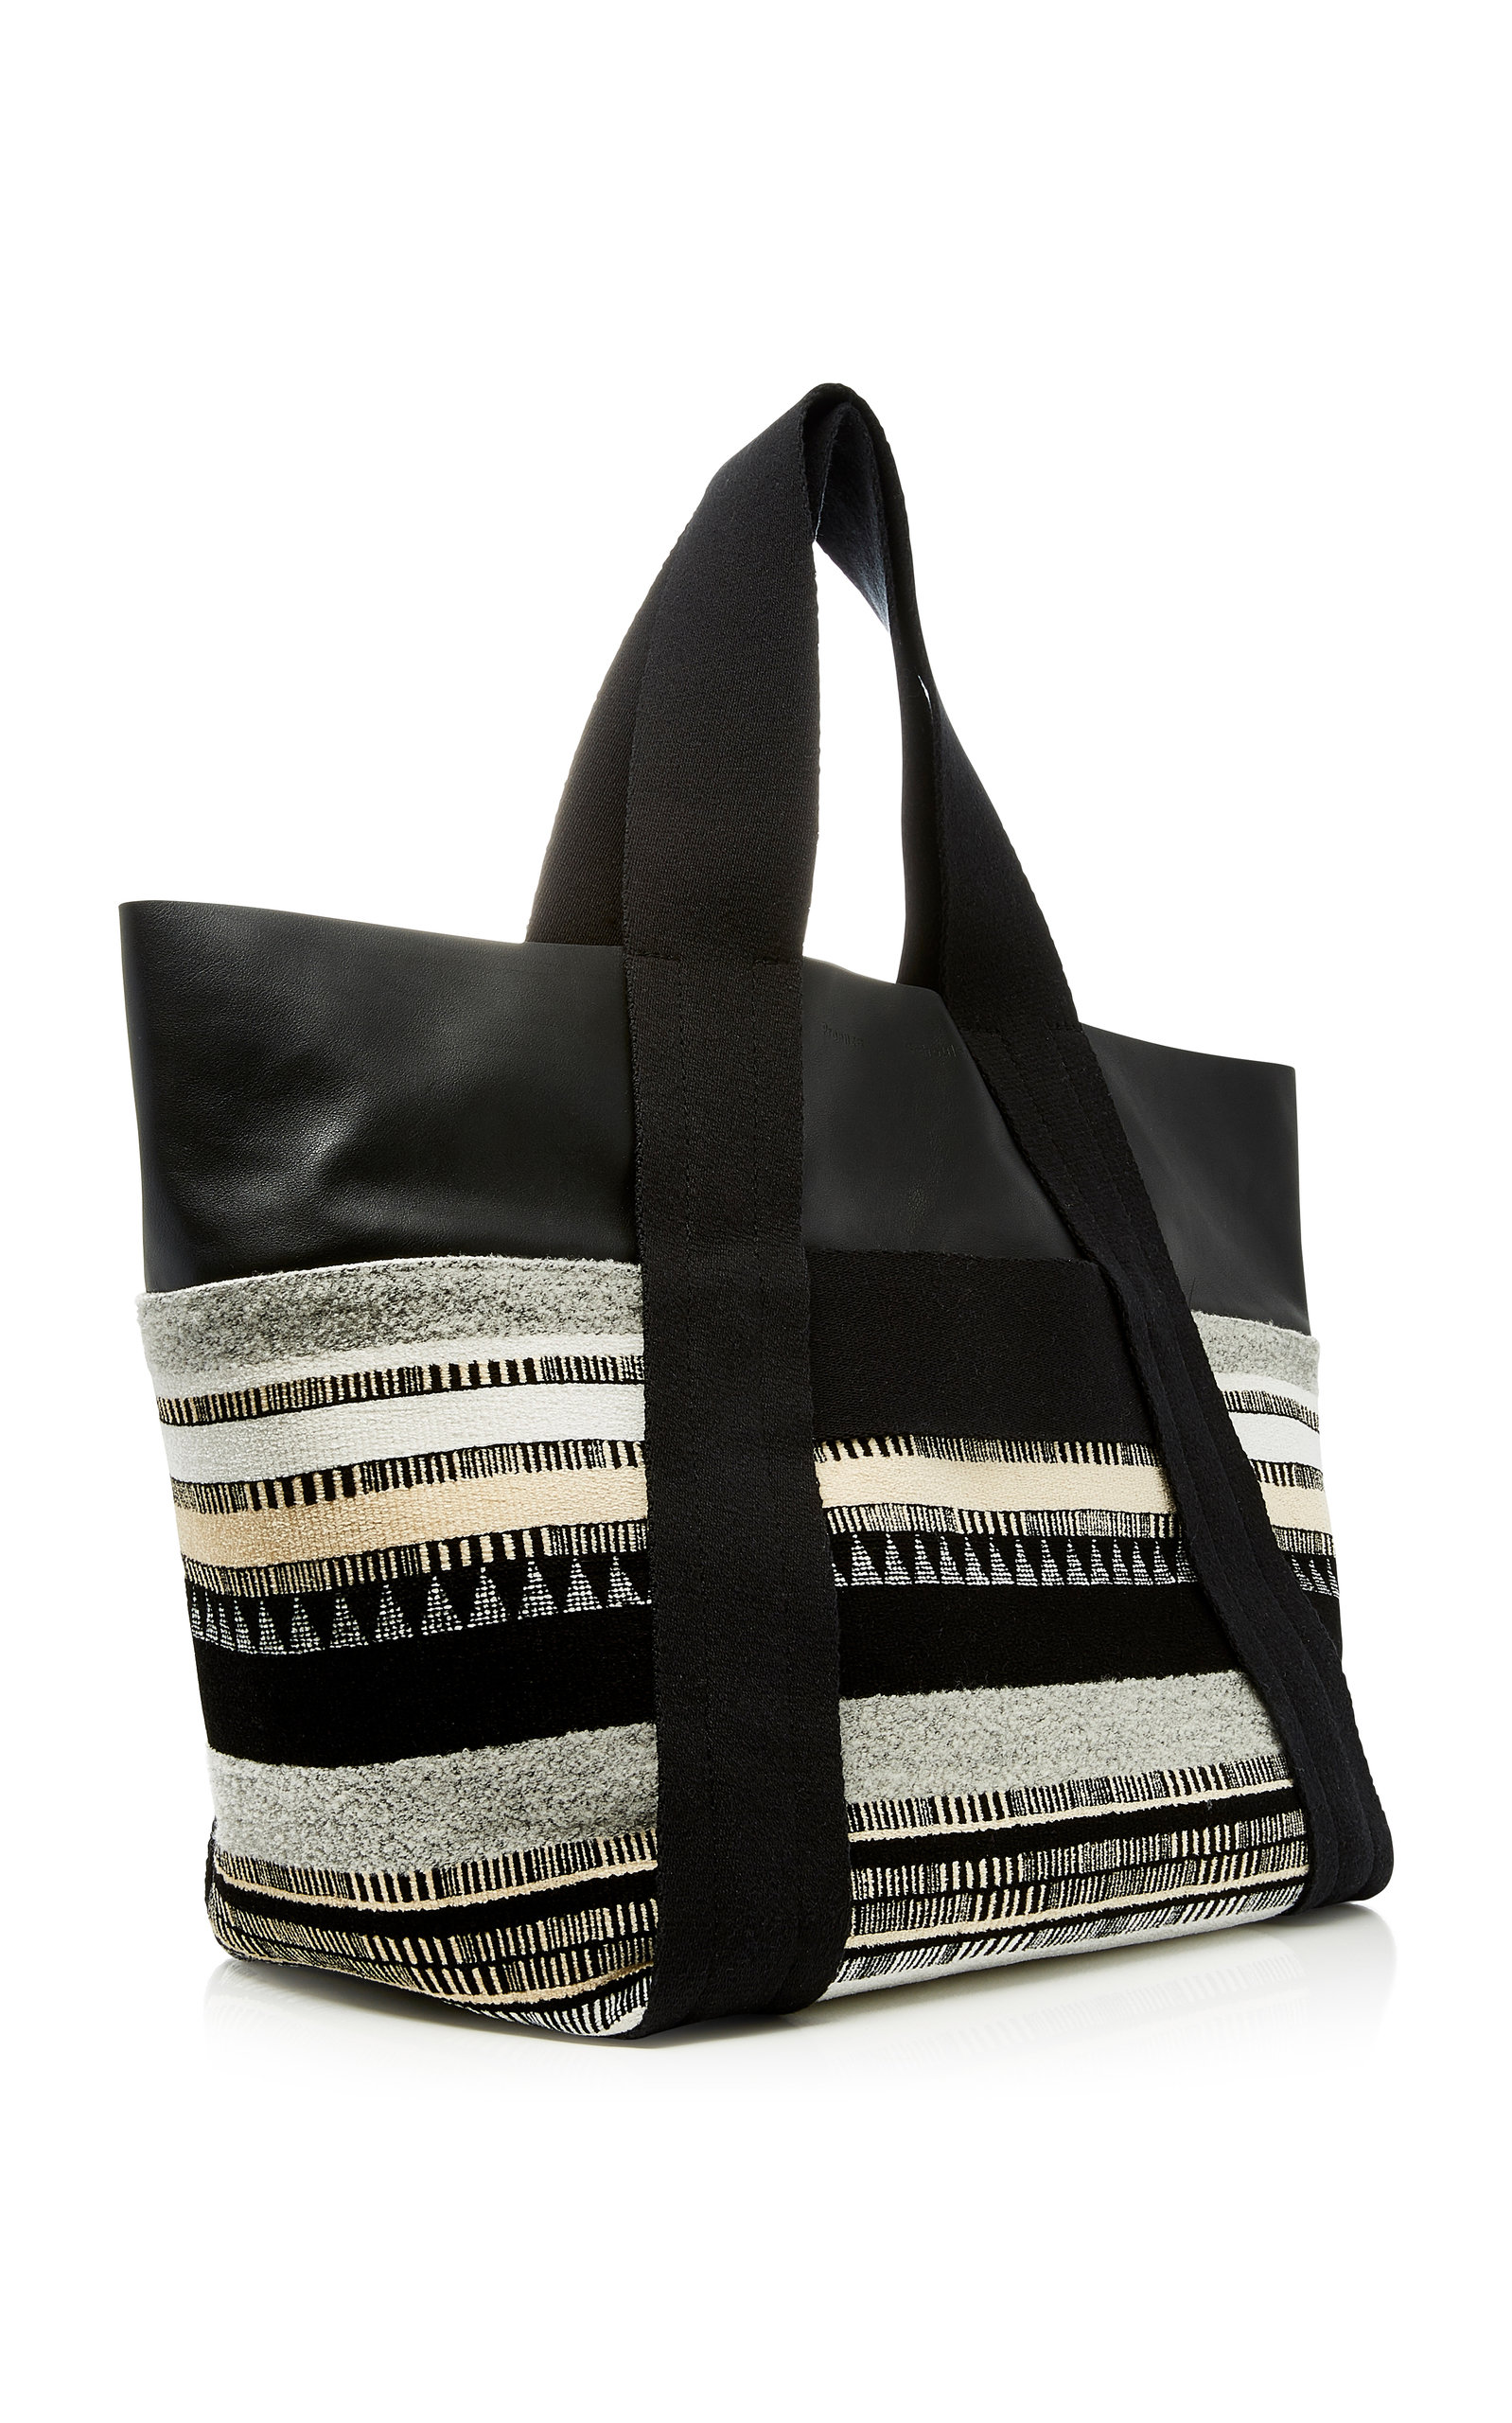 Proenza Schouler Fringed Leather Suede and Jacquard Tote hgWzD9